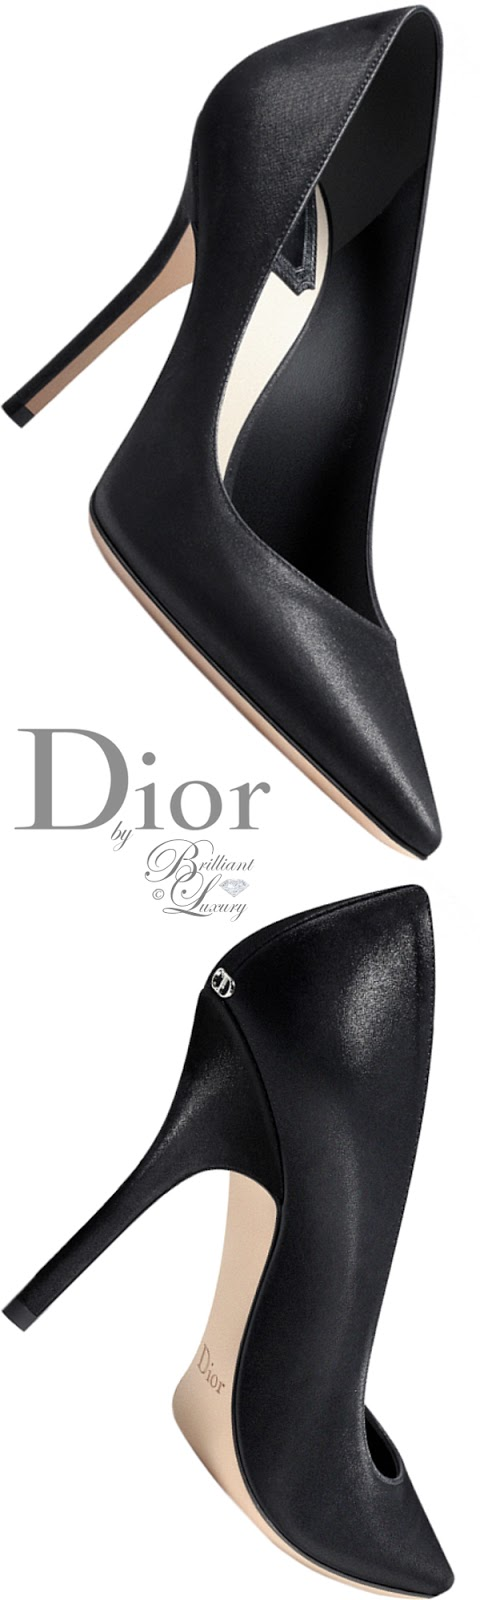 Brilliant Luxury ♦ Dior high heels